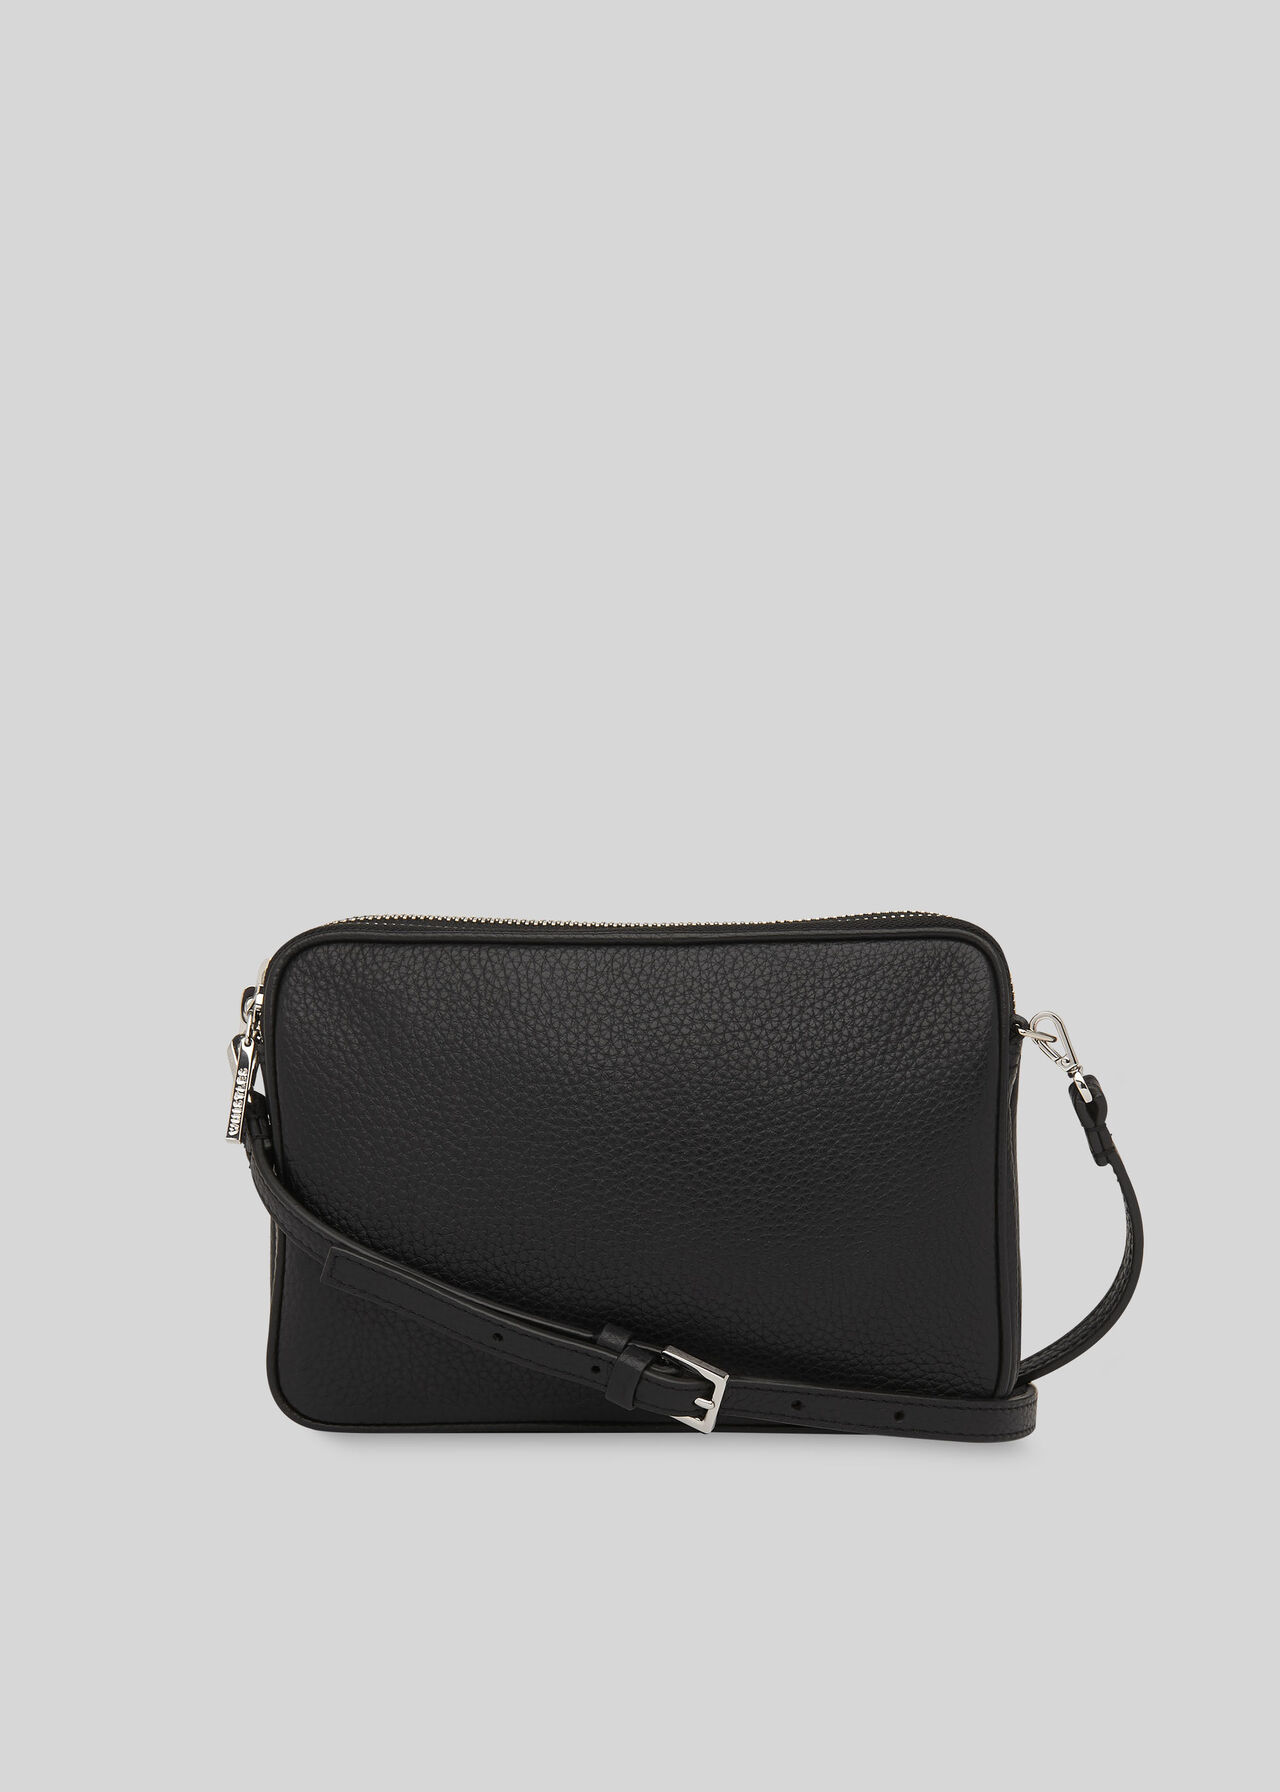 Cami Crossbody Bag Black